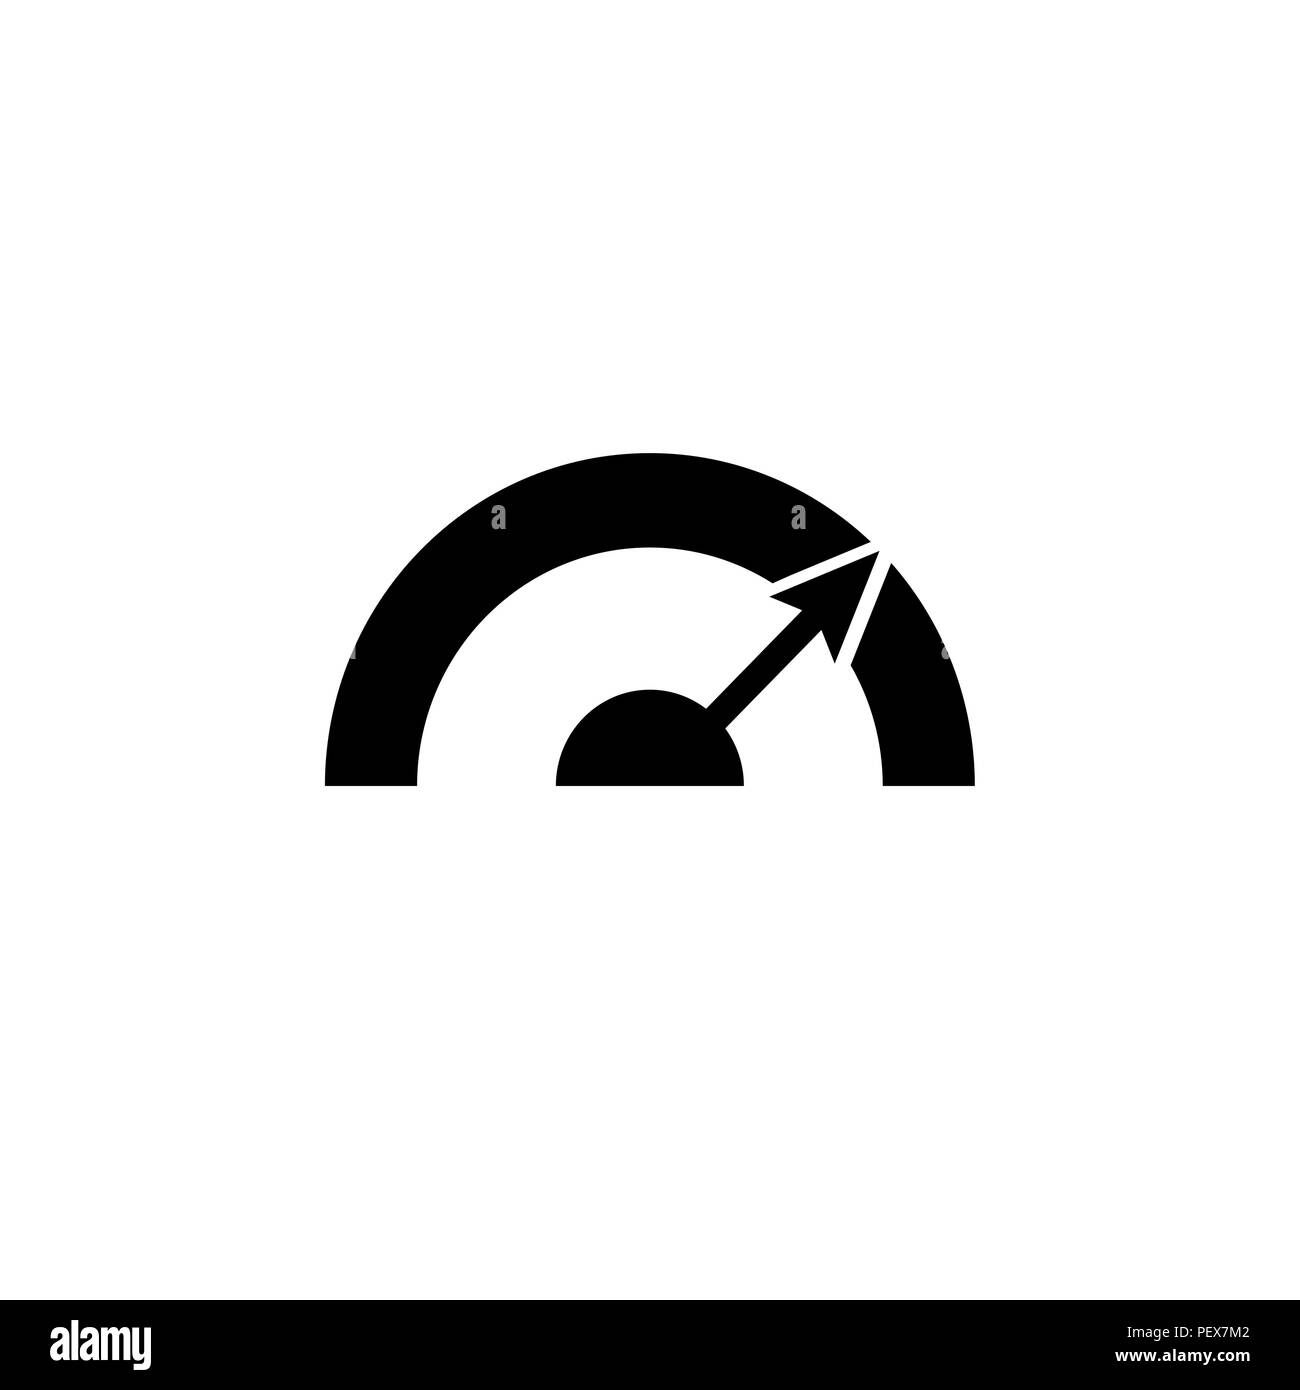 Pictograph of speedometer vector illustration black on white background